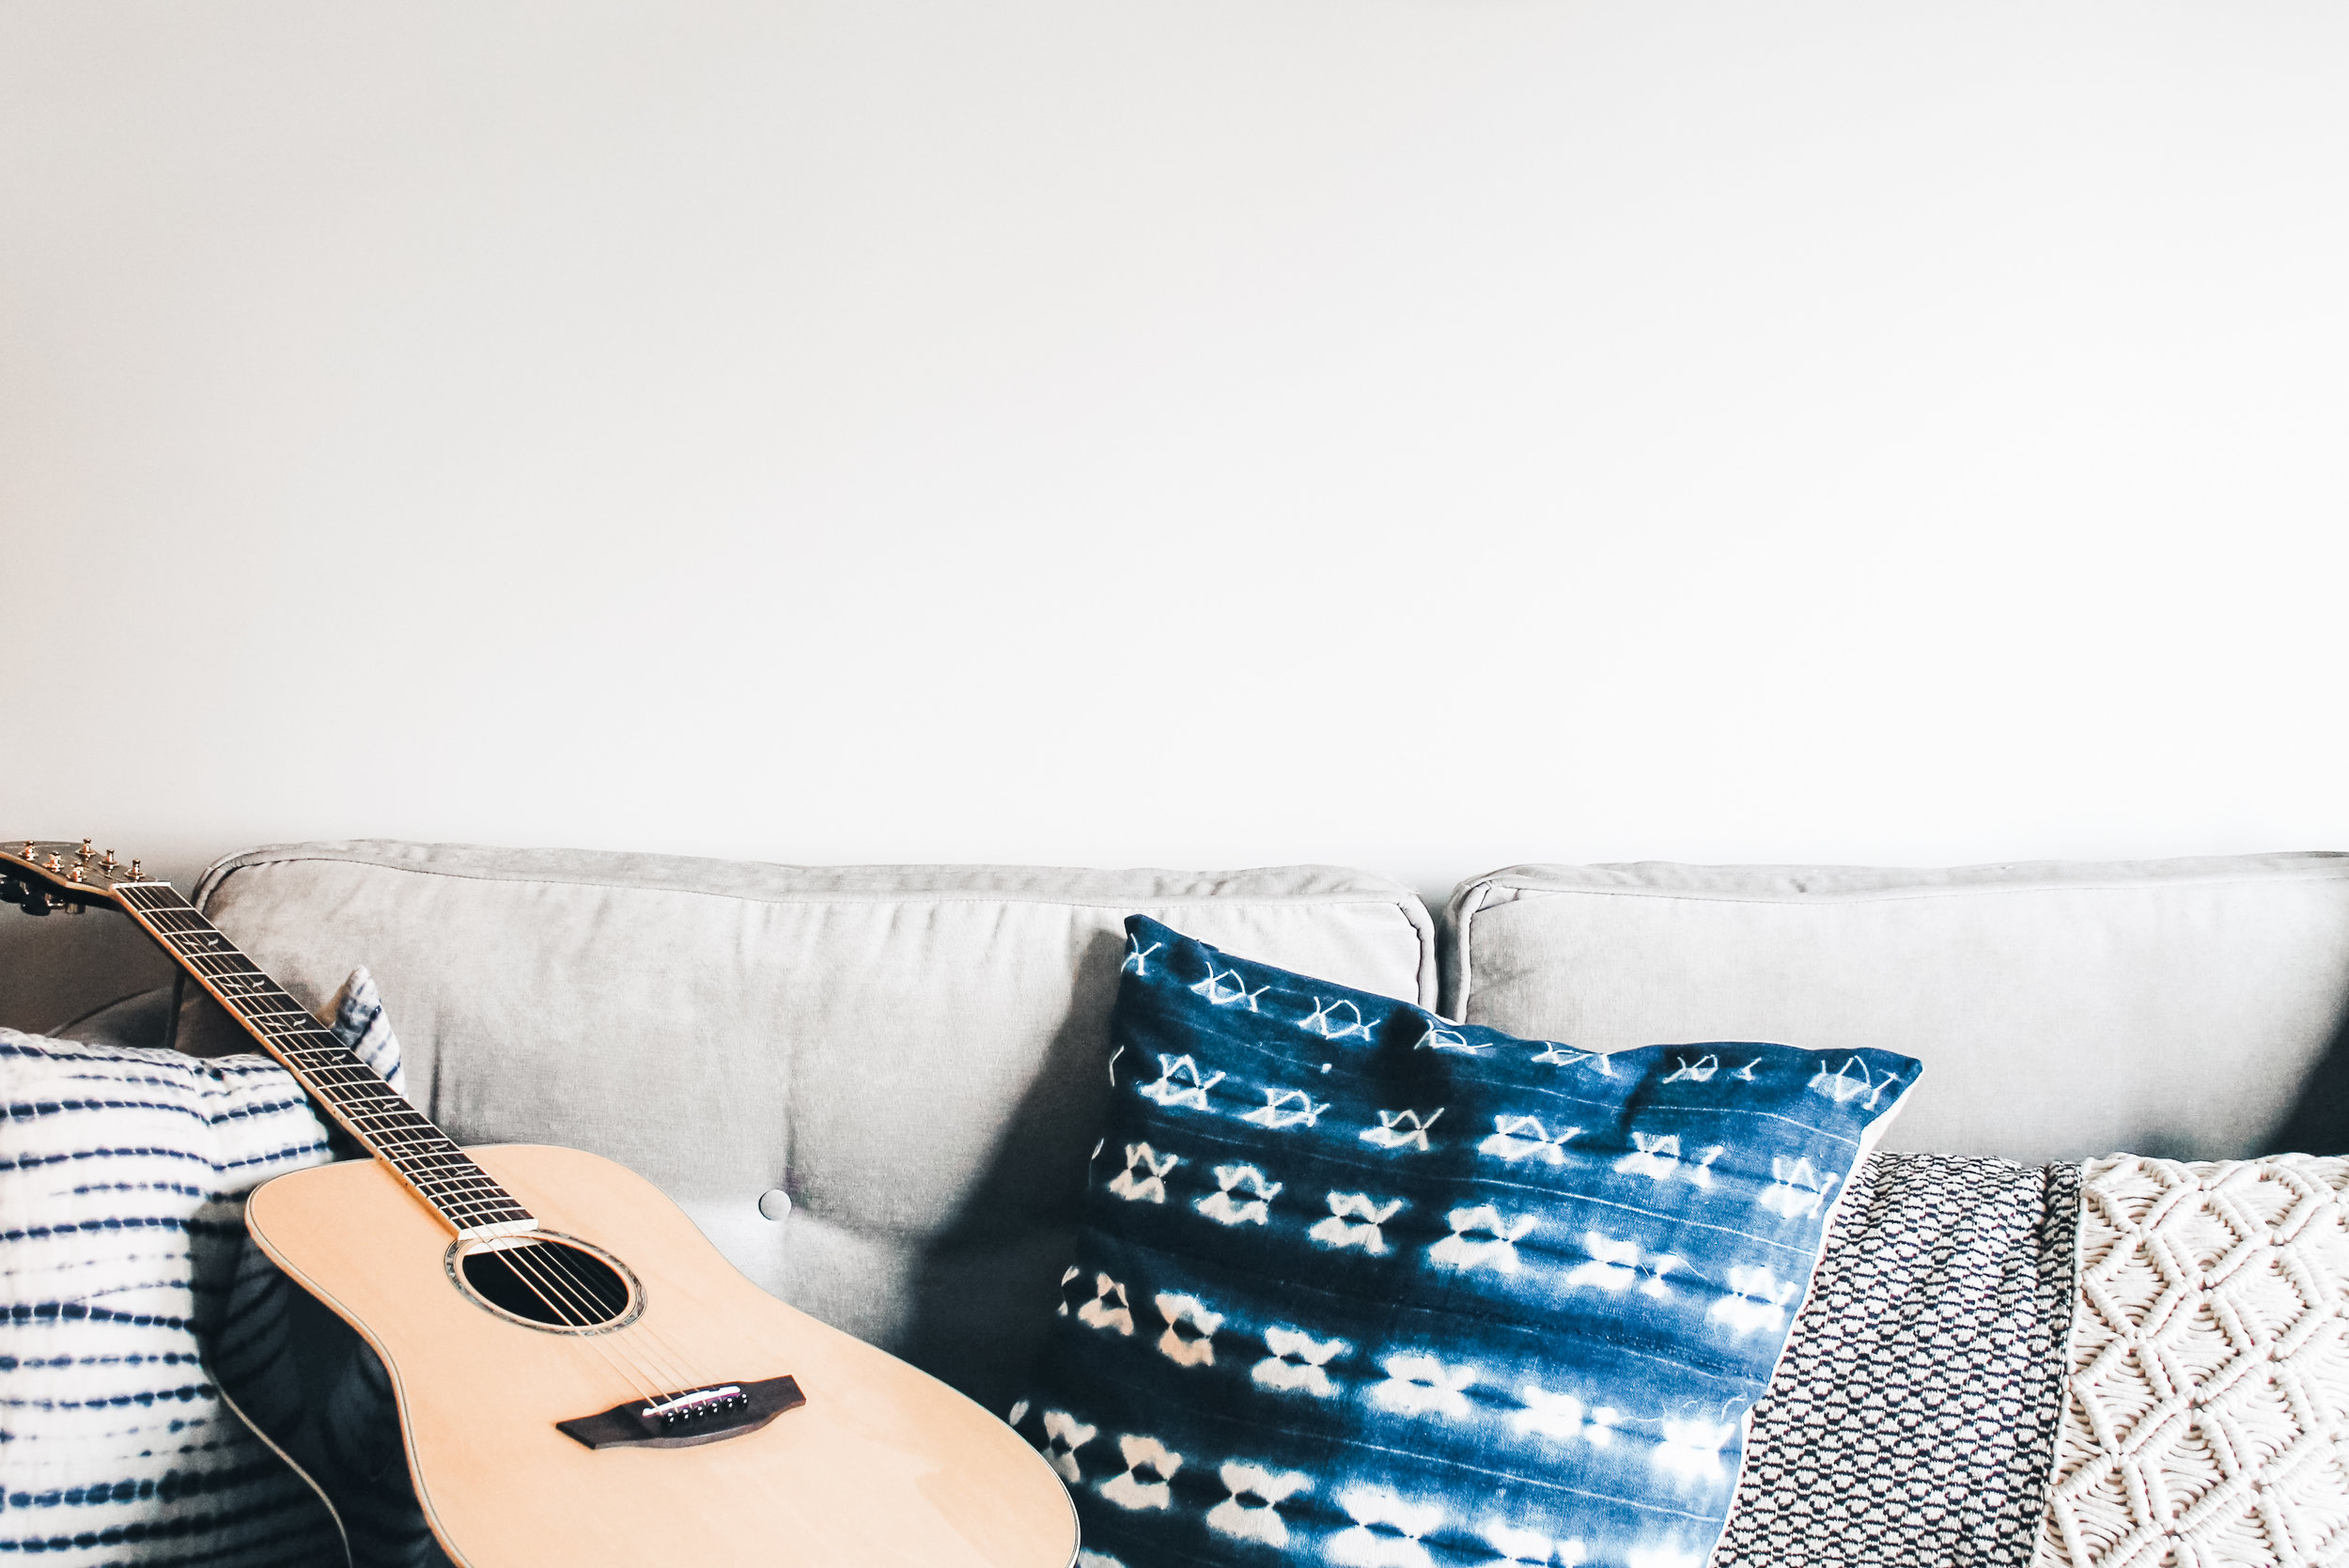 A guitar on a gray sofa with accent throw pillows in geometric patters and navy blue.